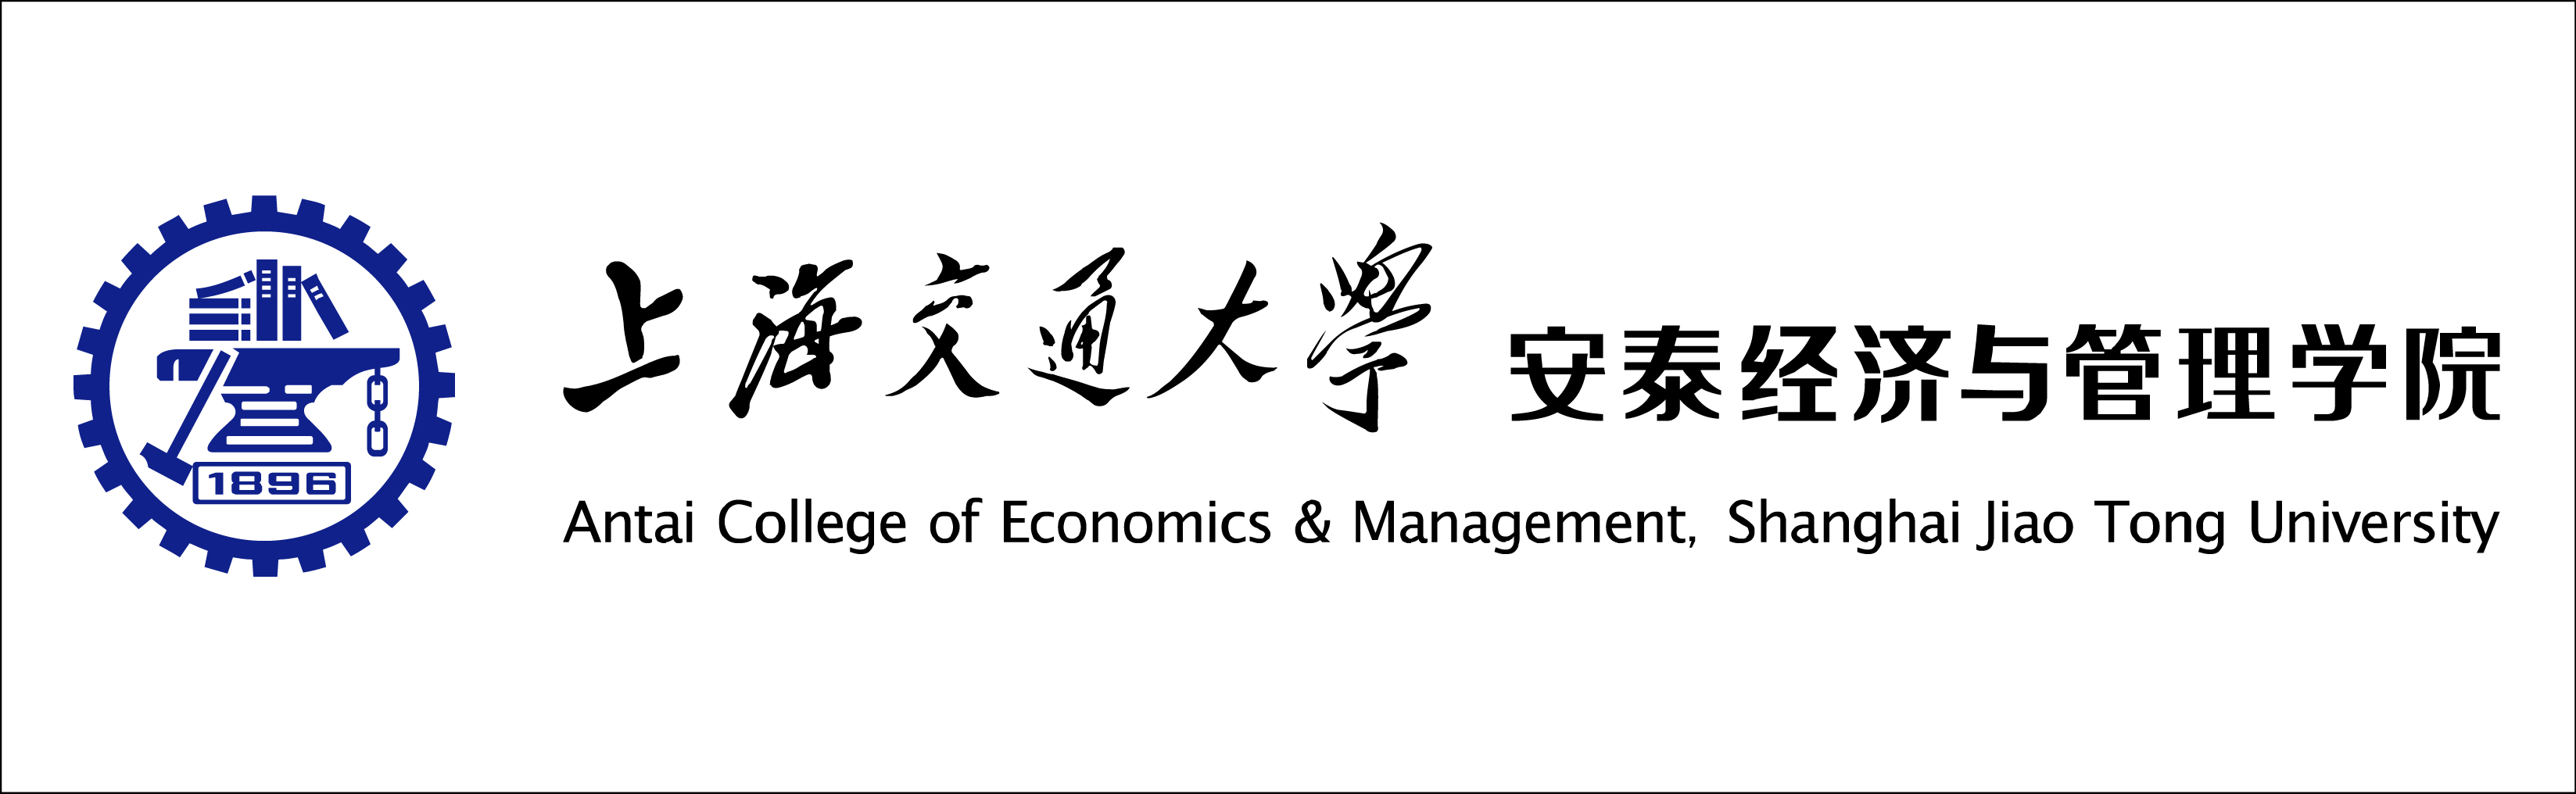 Logo Shanghai Jiao Tong University- Antai College of Economics and Management